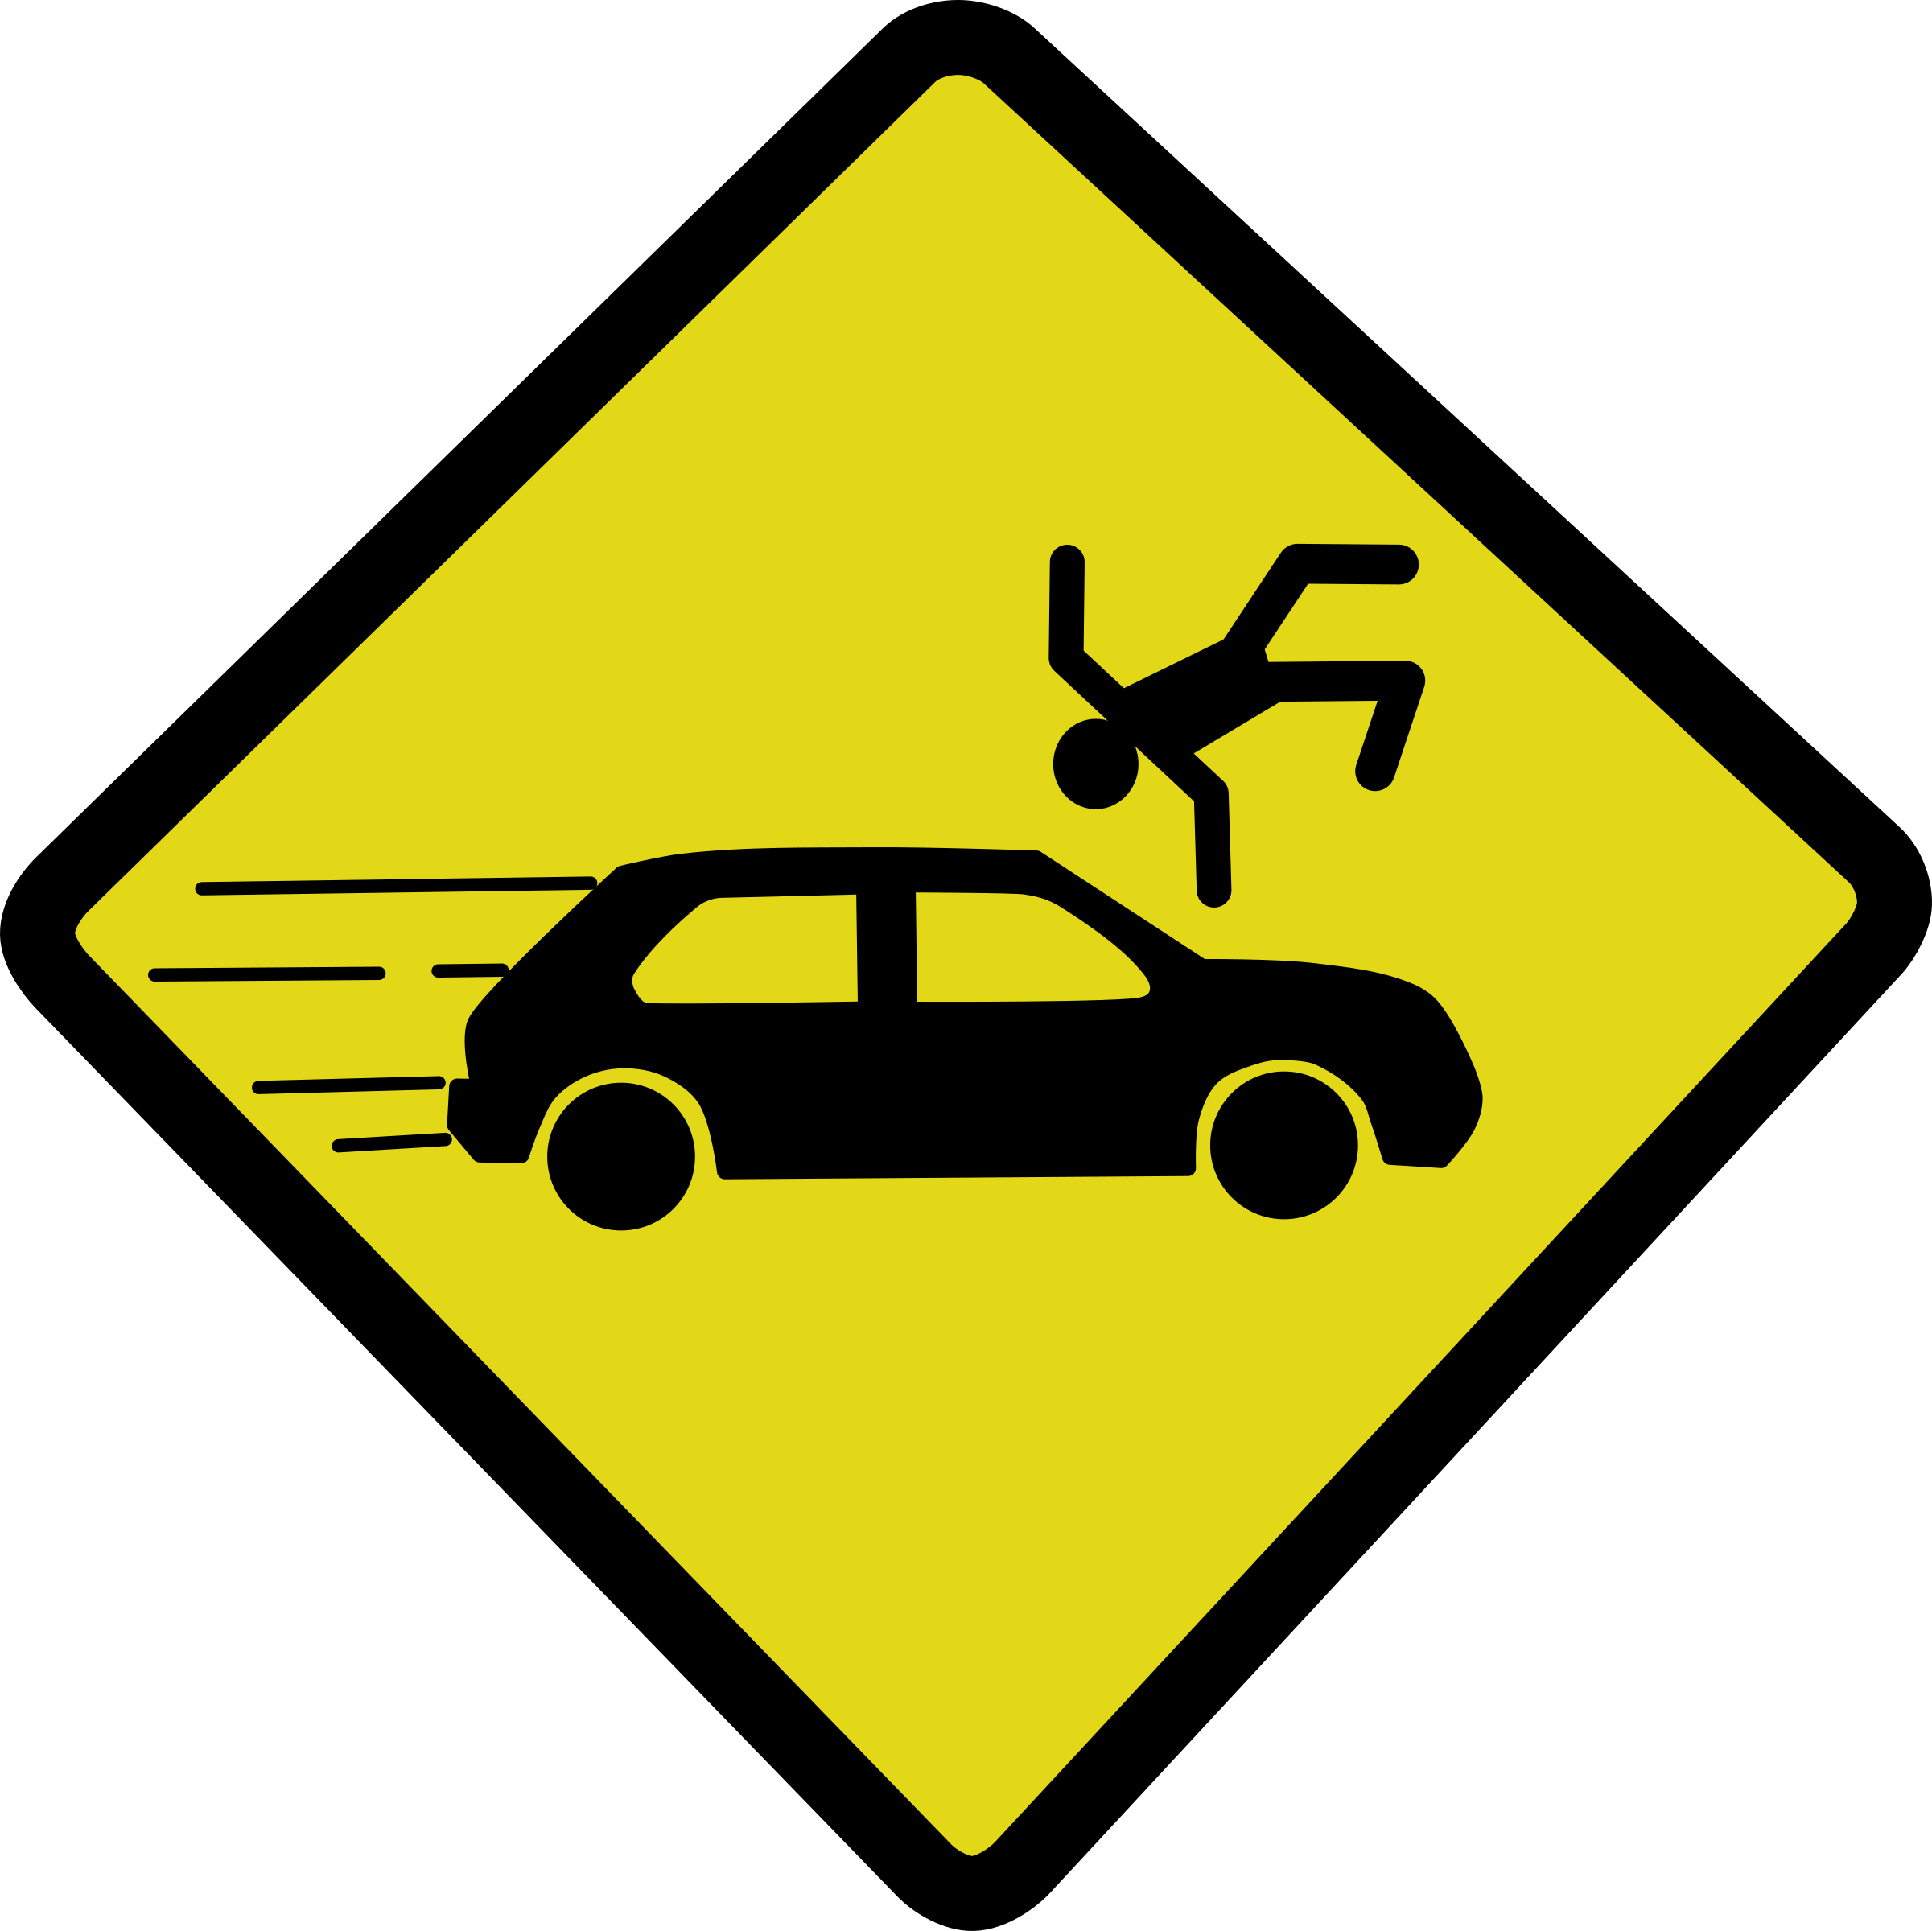 Clipart - Car accident sign